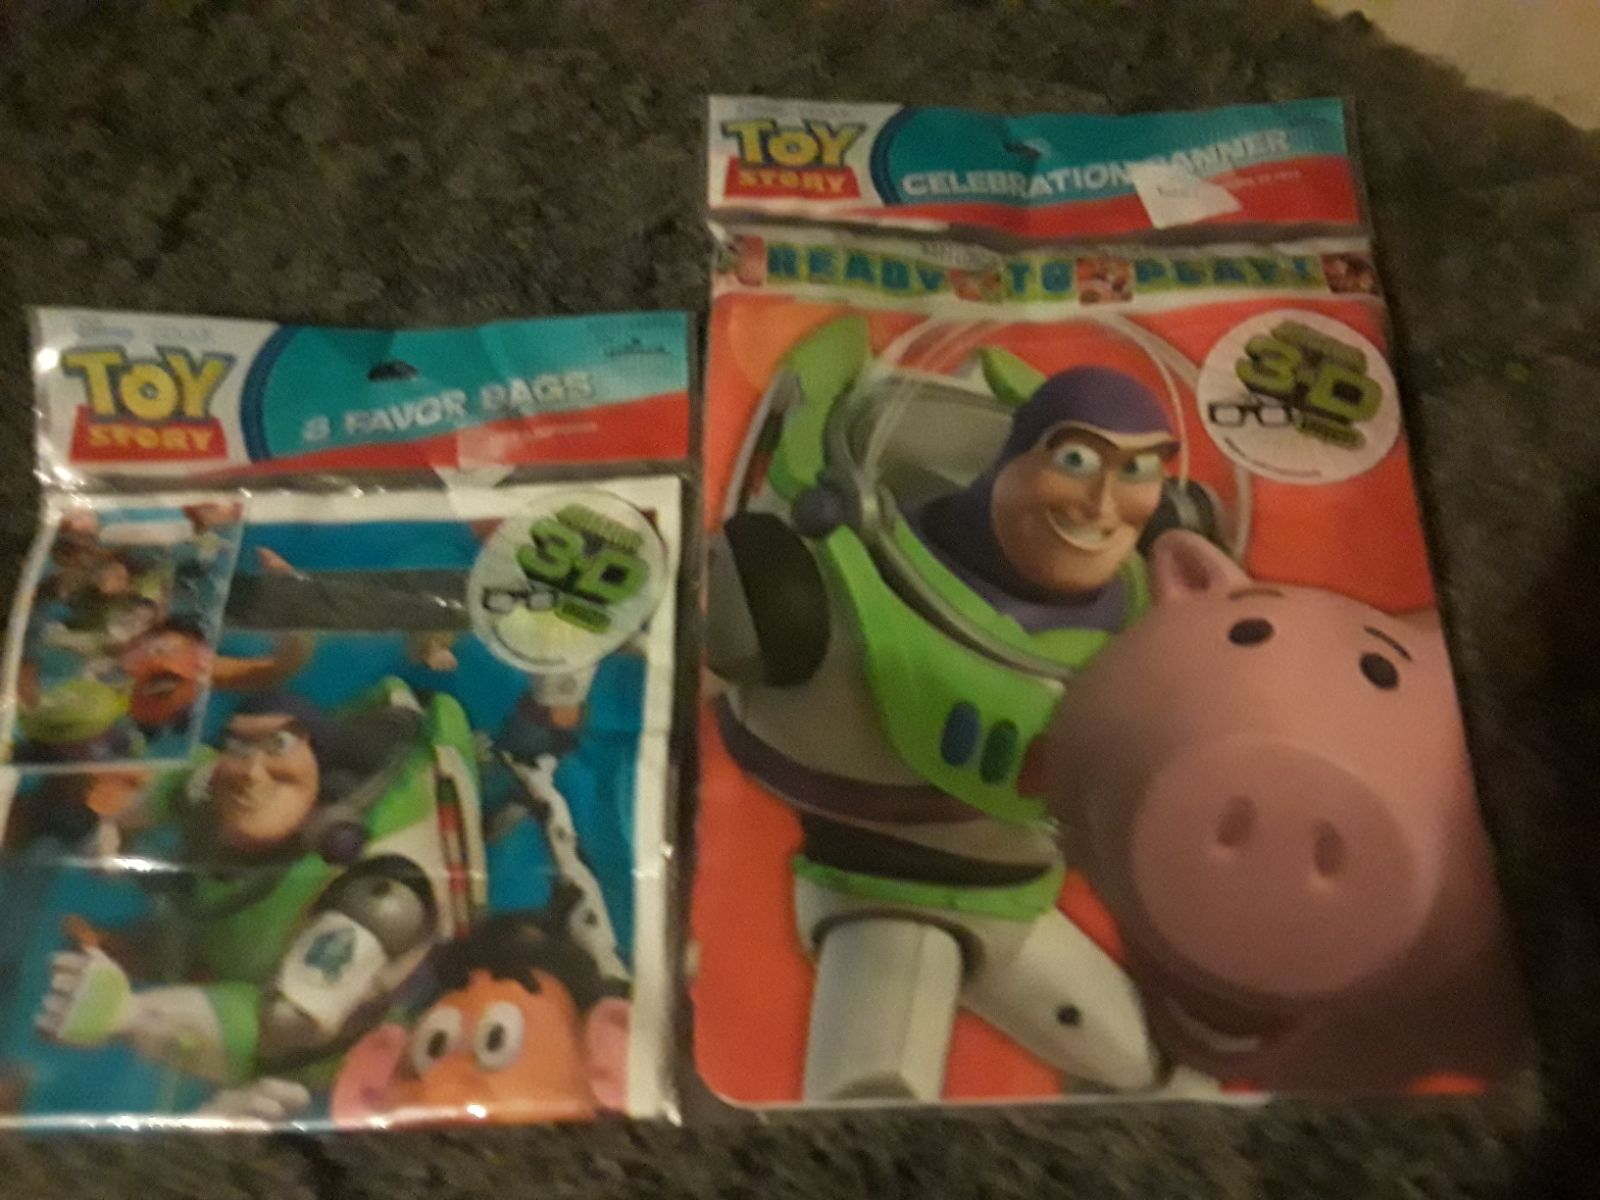 Toy story 3 Birthday banner and treat ba